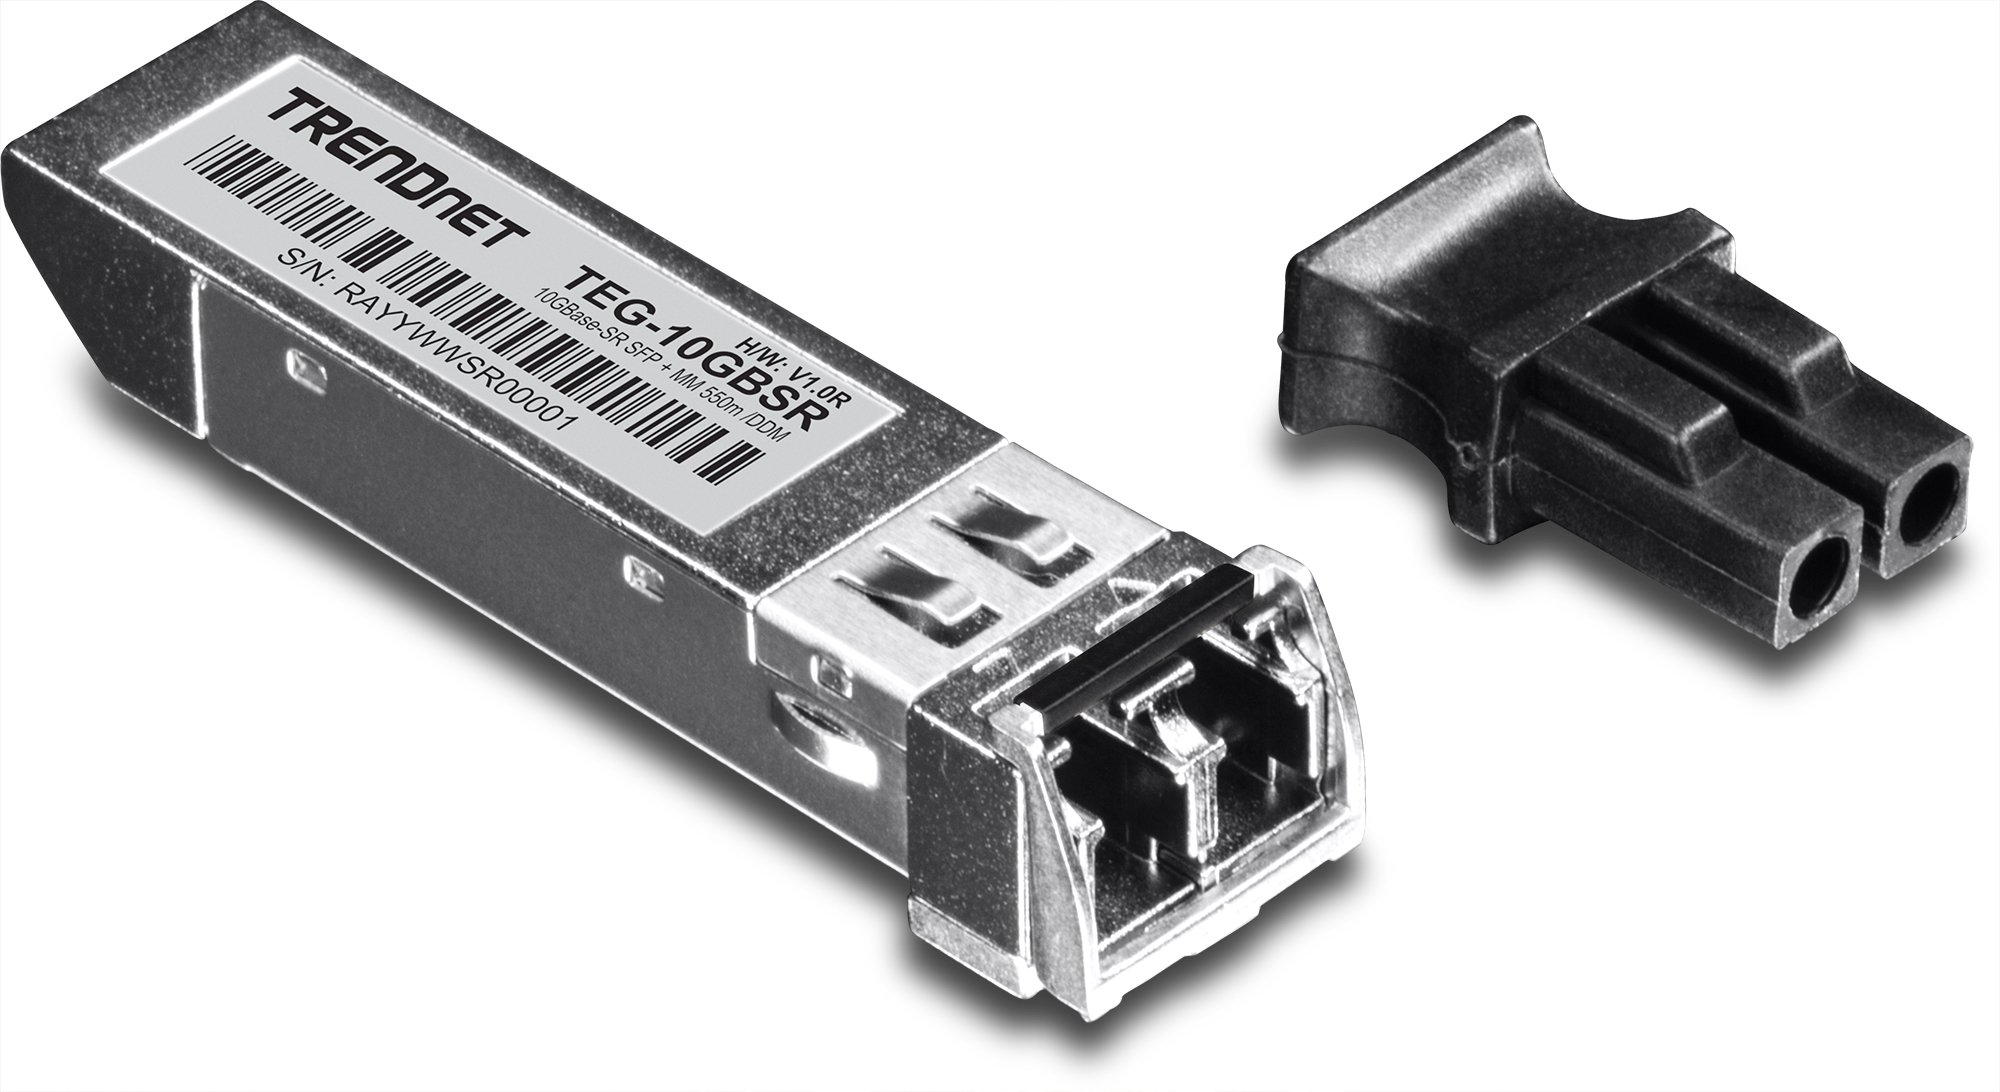 TRENDnet 10G-SR SFP+ module, Multi-Mode, LC Transceiver Module, Up to 550 m, TEG10GBSR by TRENDnet (Image #1)